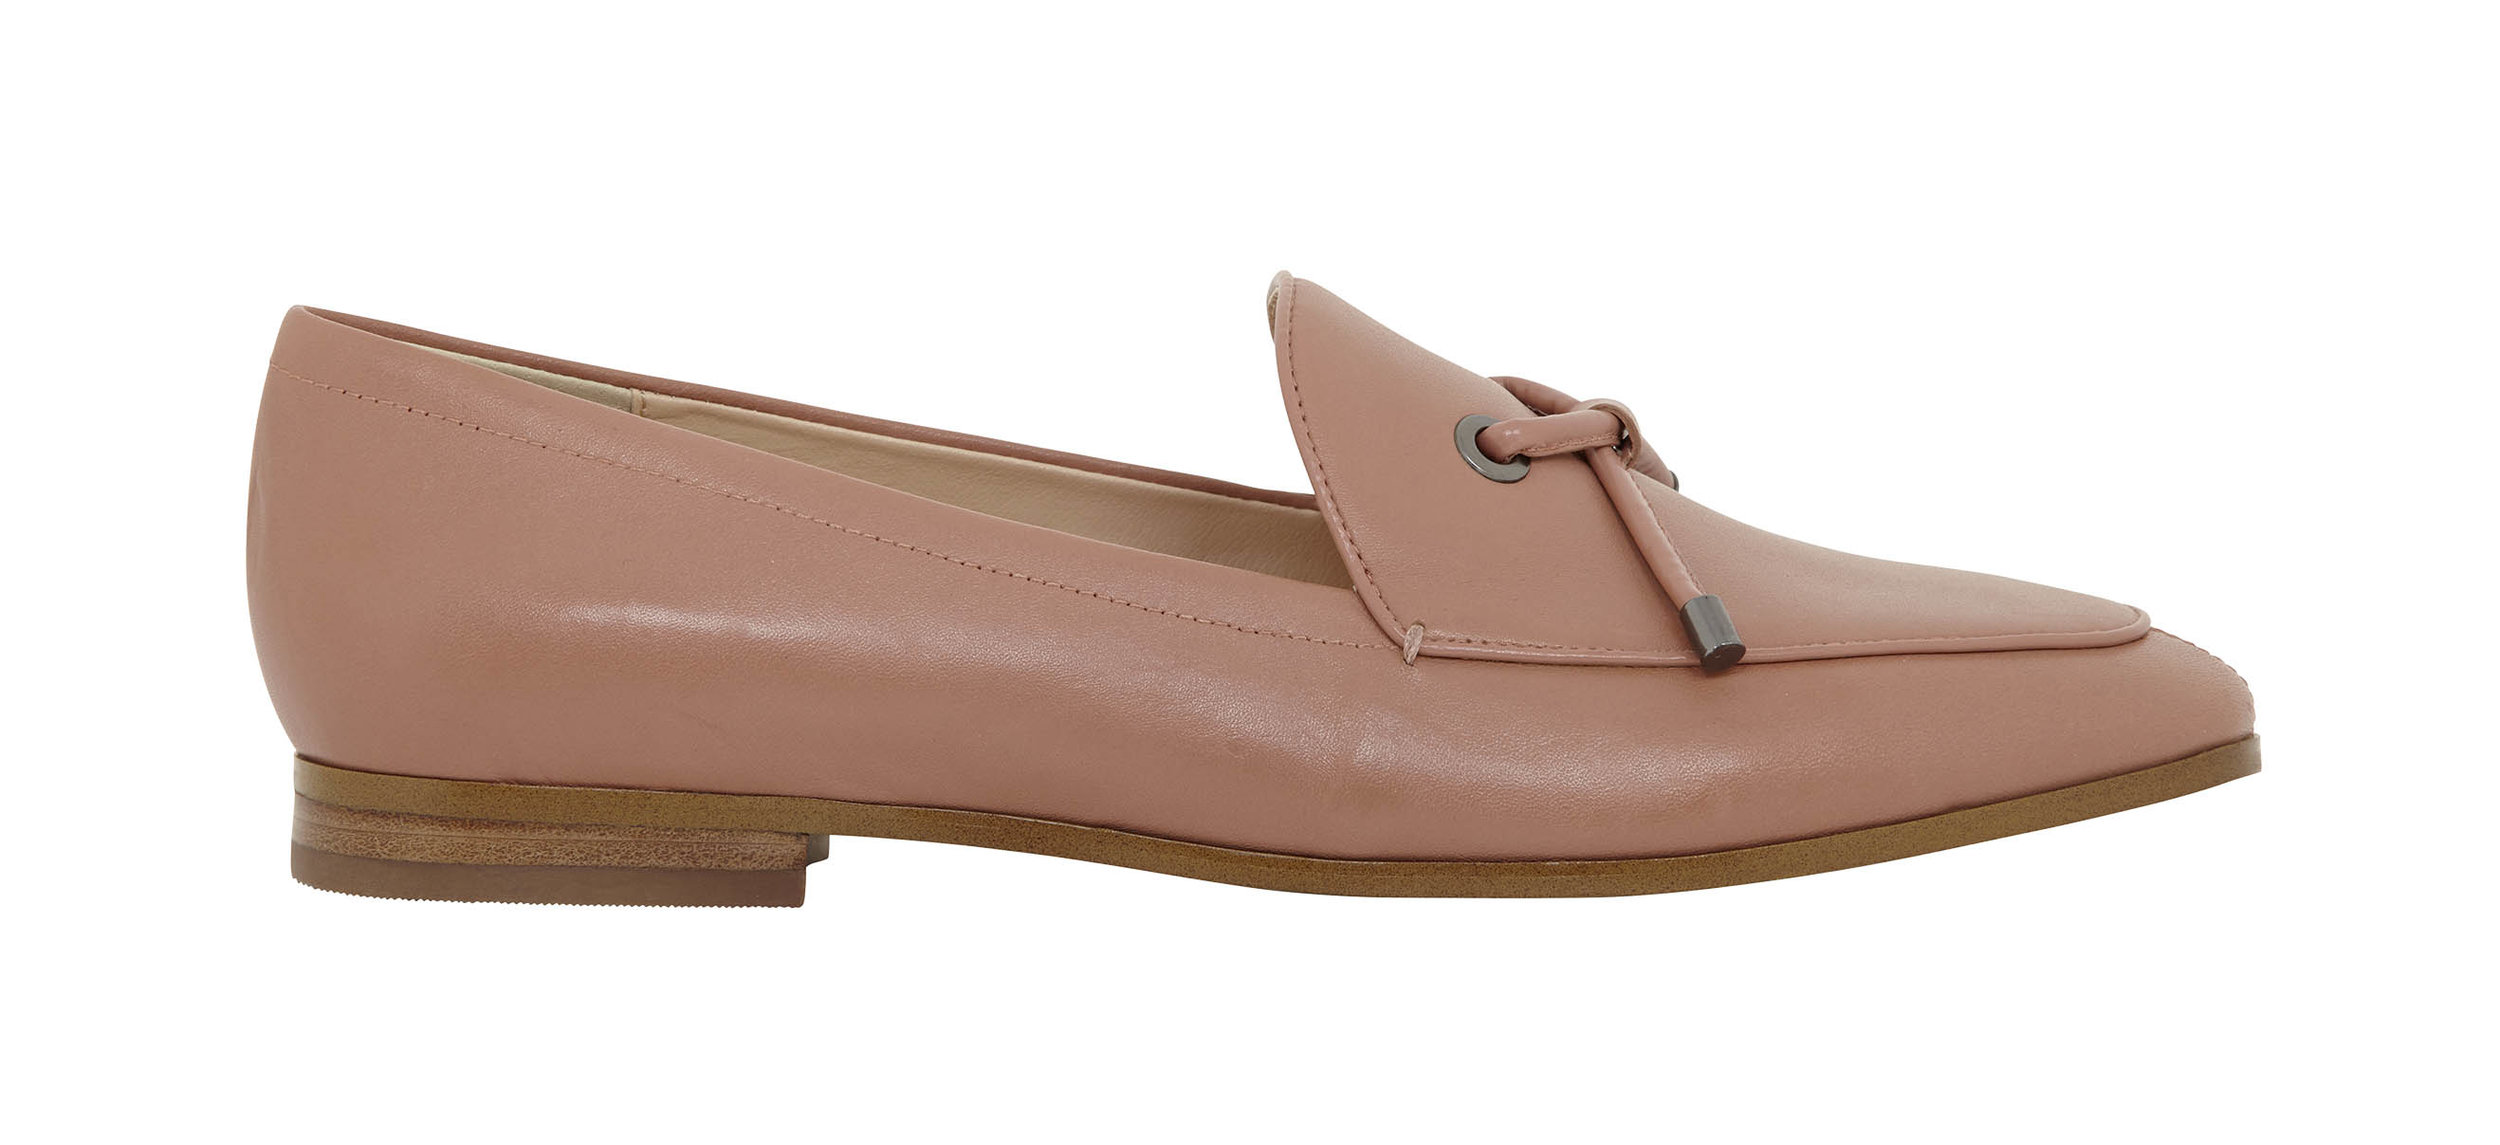 8.  Apricot loafers, £59, M&S